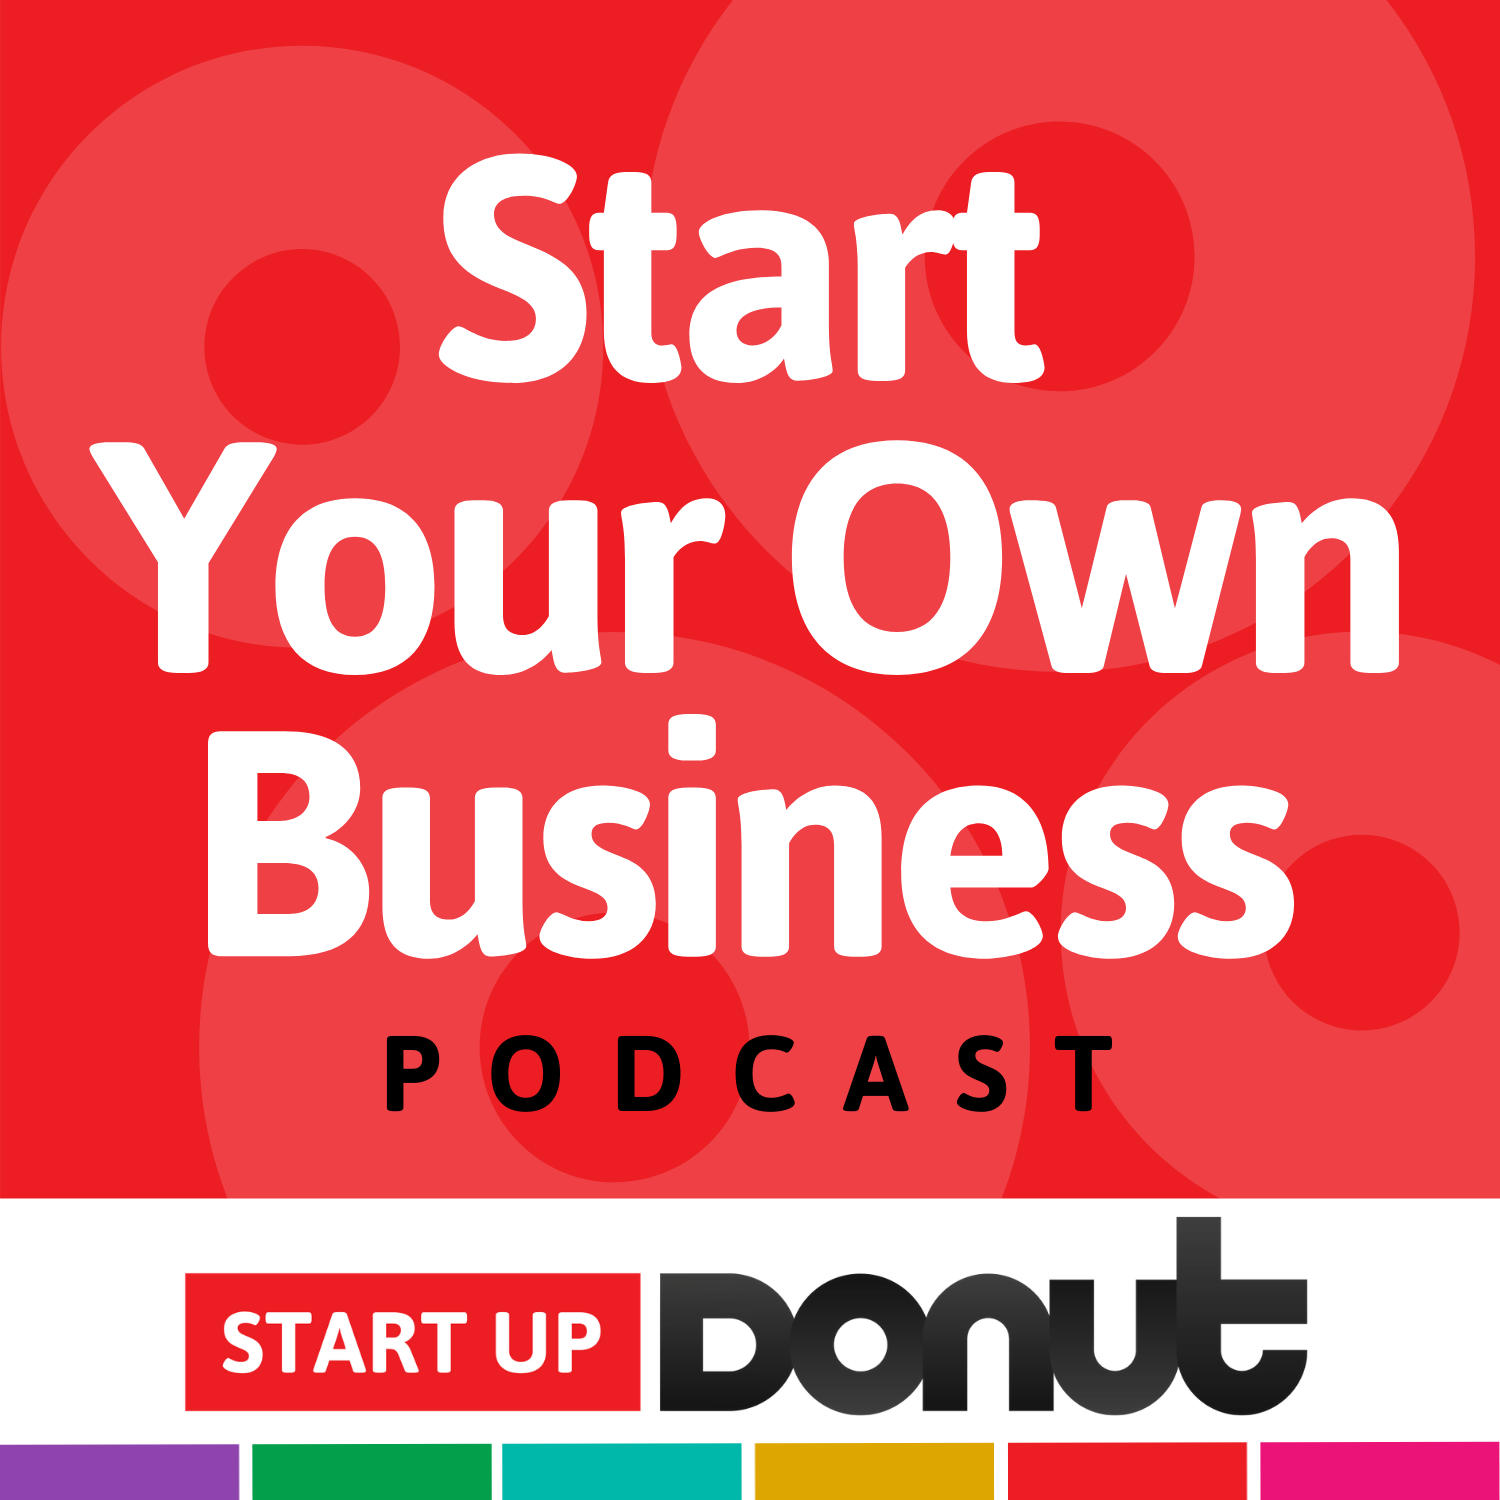 Artwork for podcast Start Your Own Business